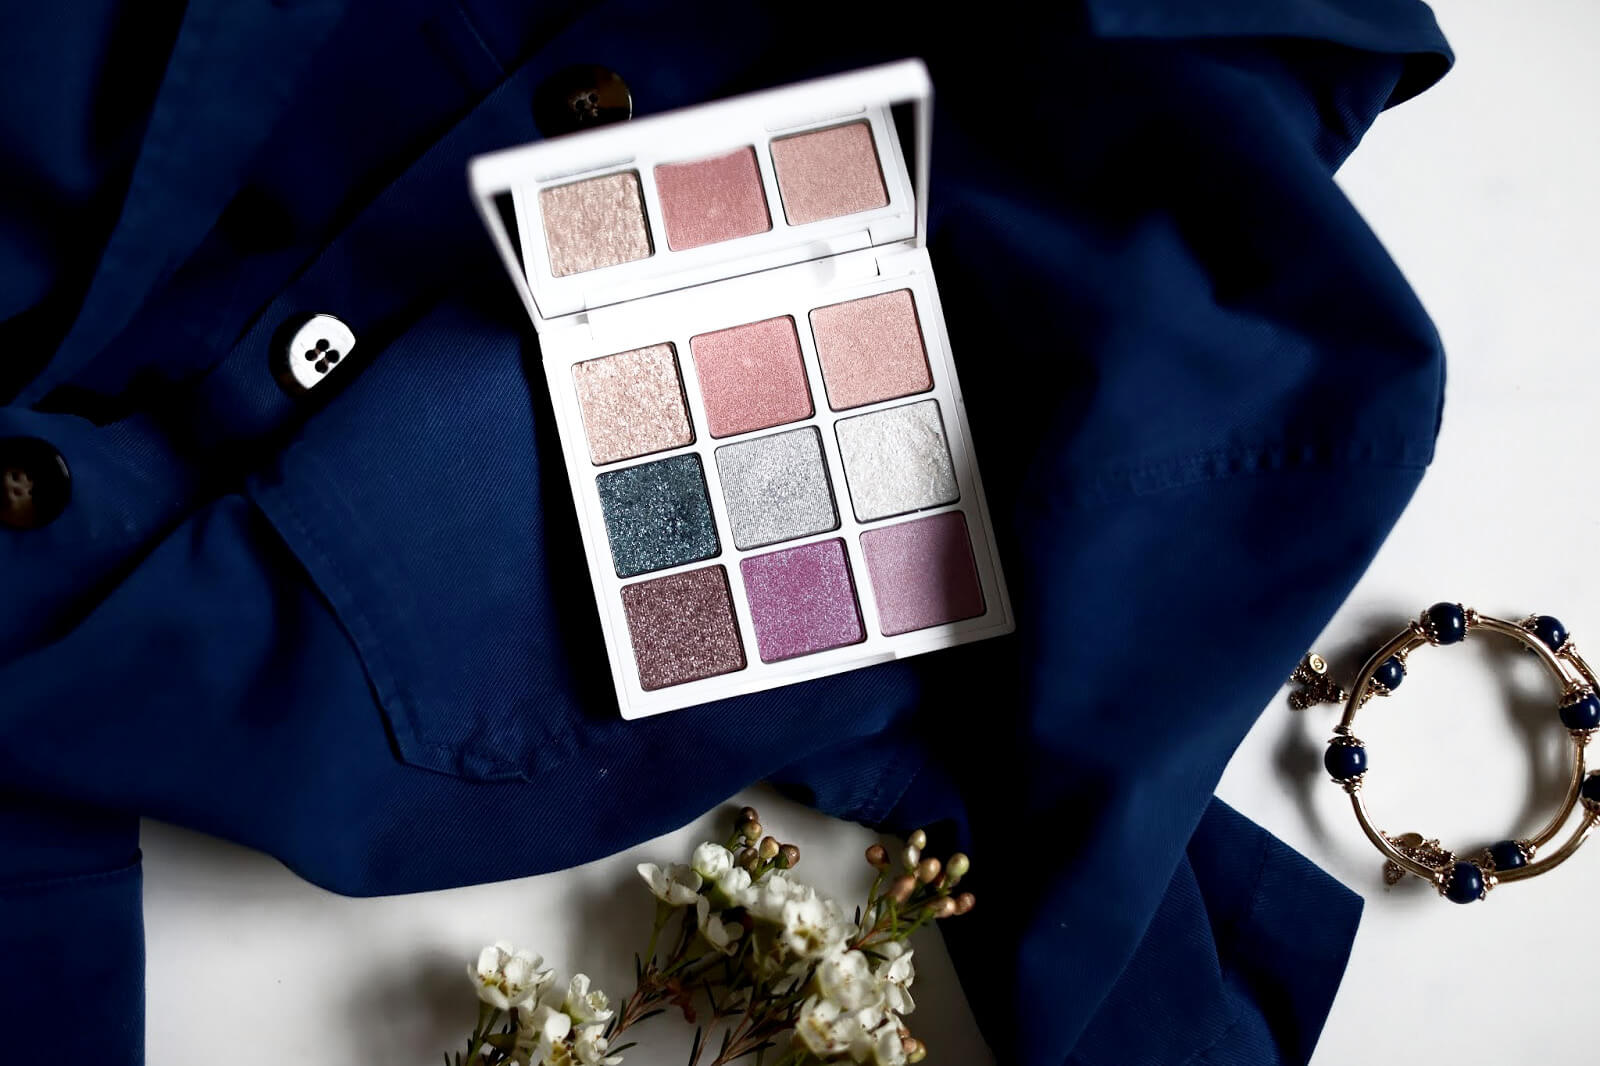 chantecaille-polar-ice-eye-palette-printemps-2019-avis-test-swatch